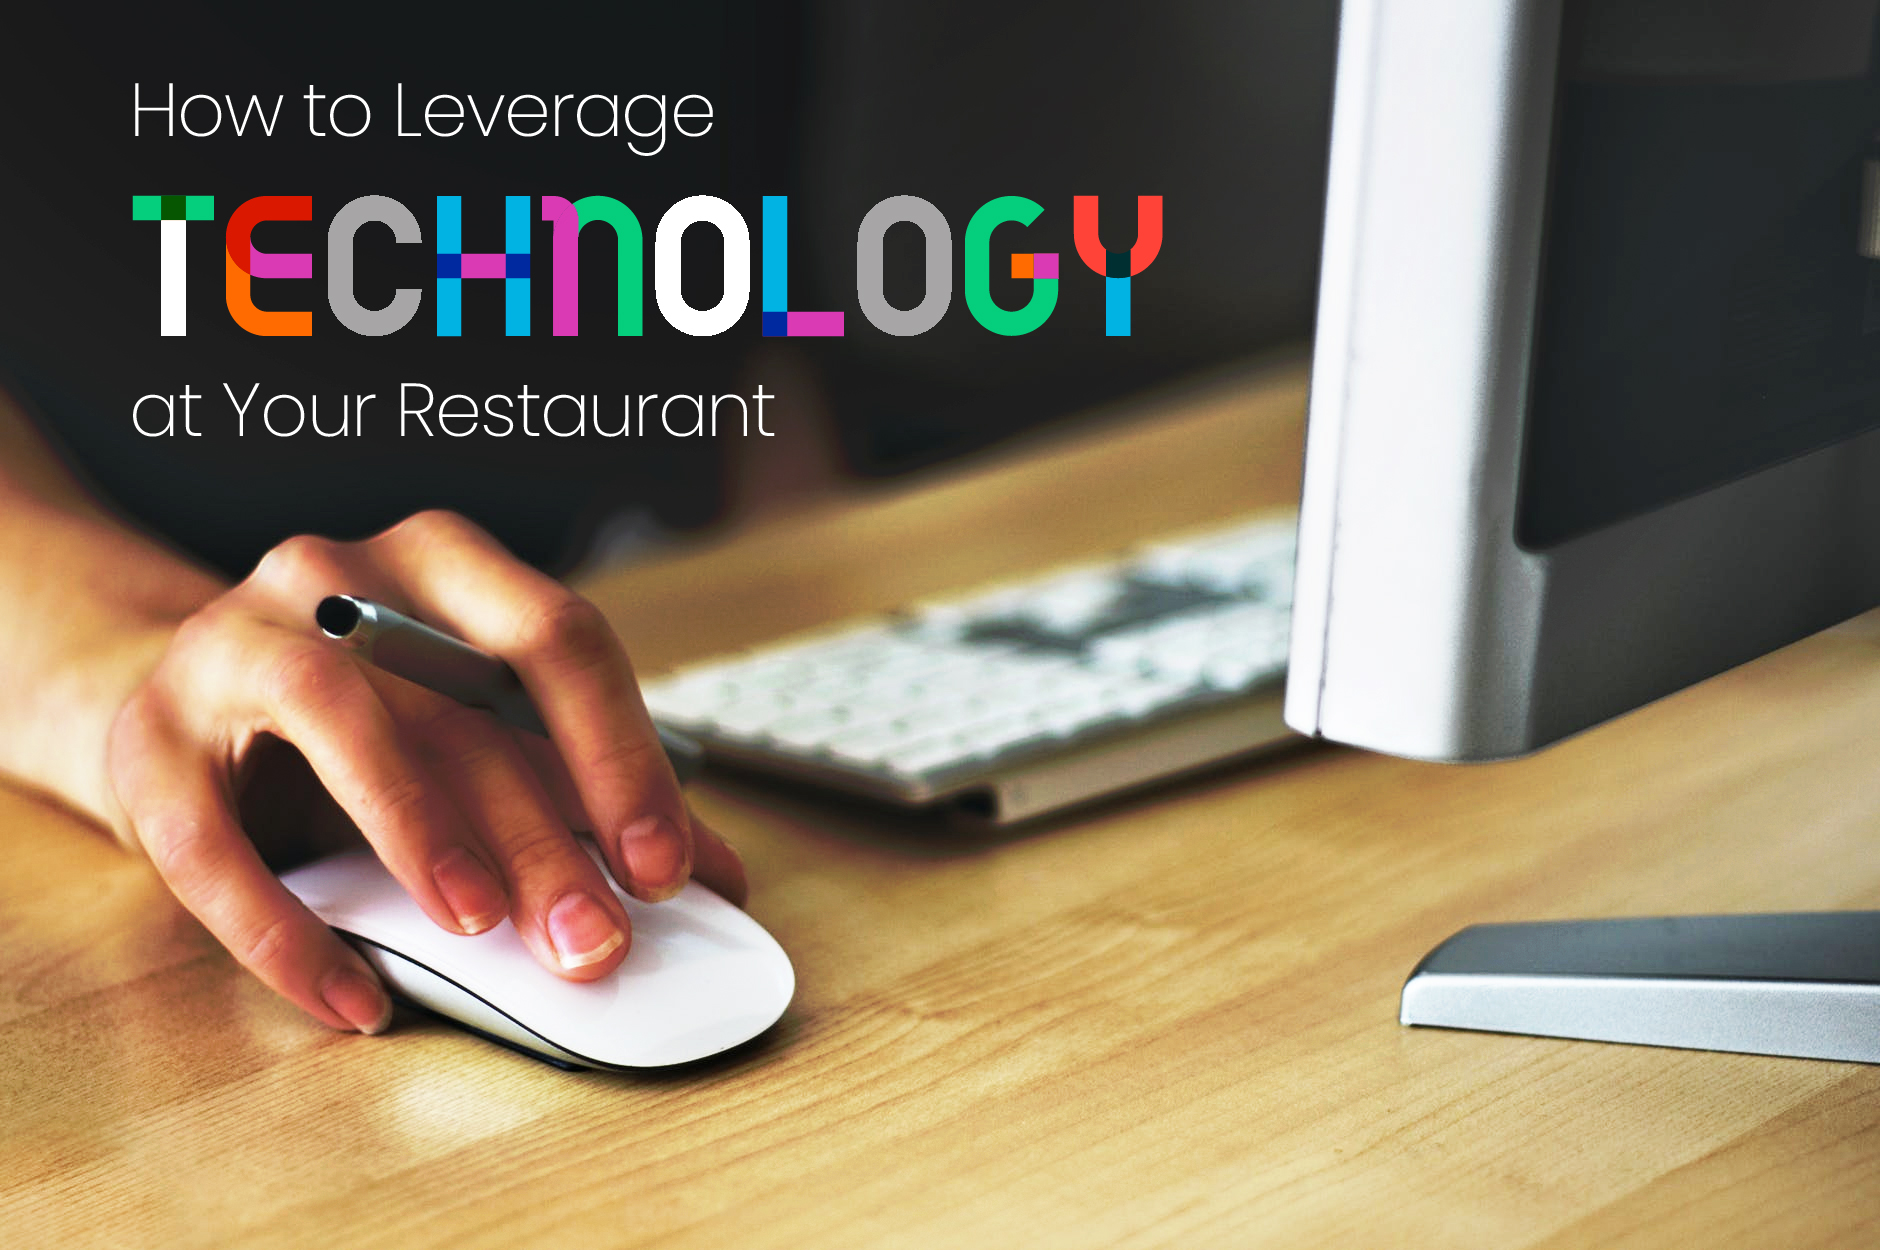 How to Leverage Restaurant Technology